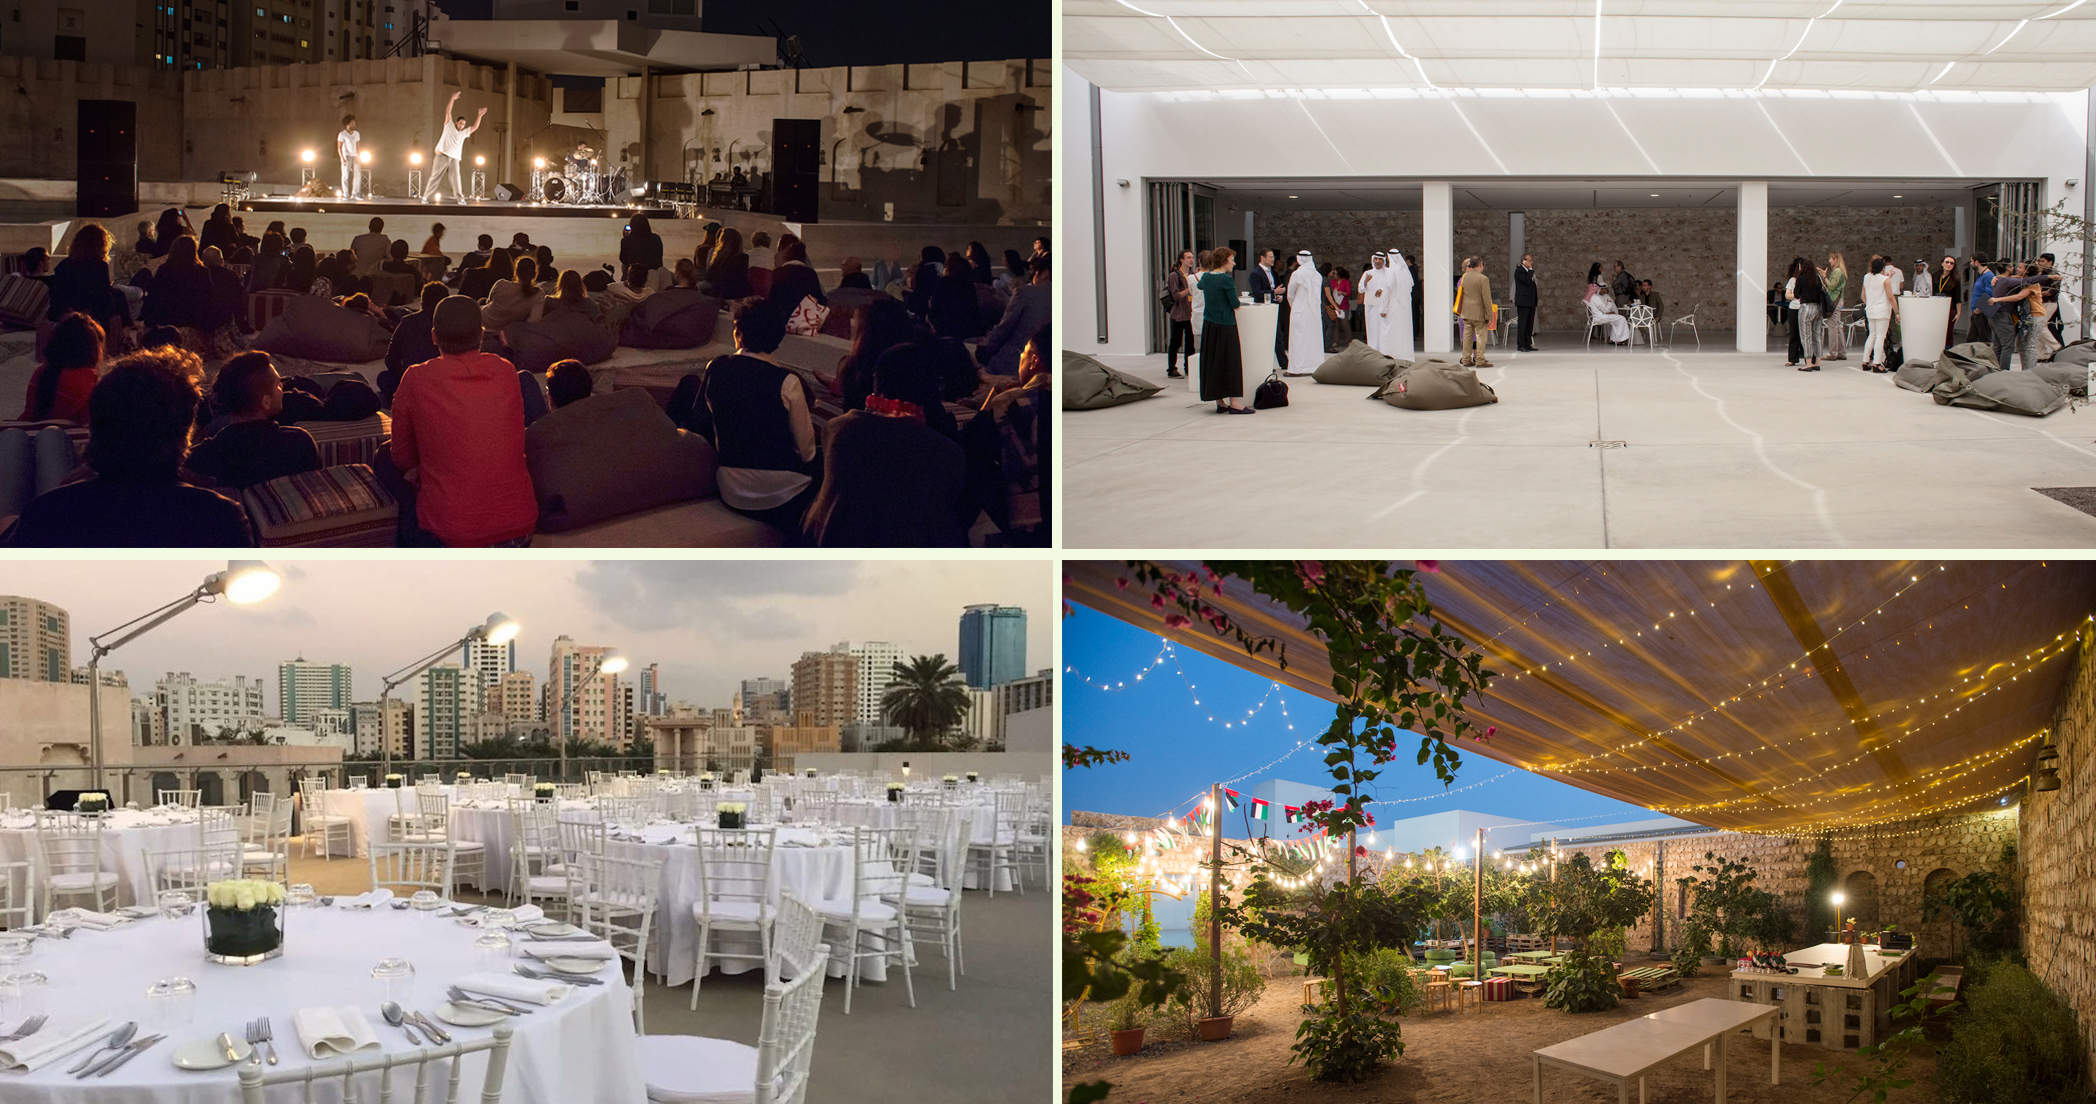 What you need to know when renting a venue for the event